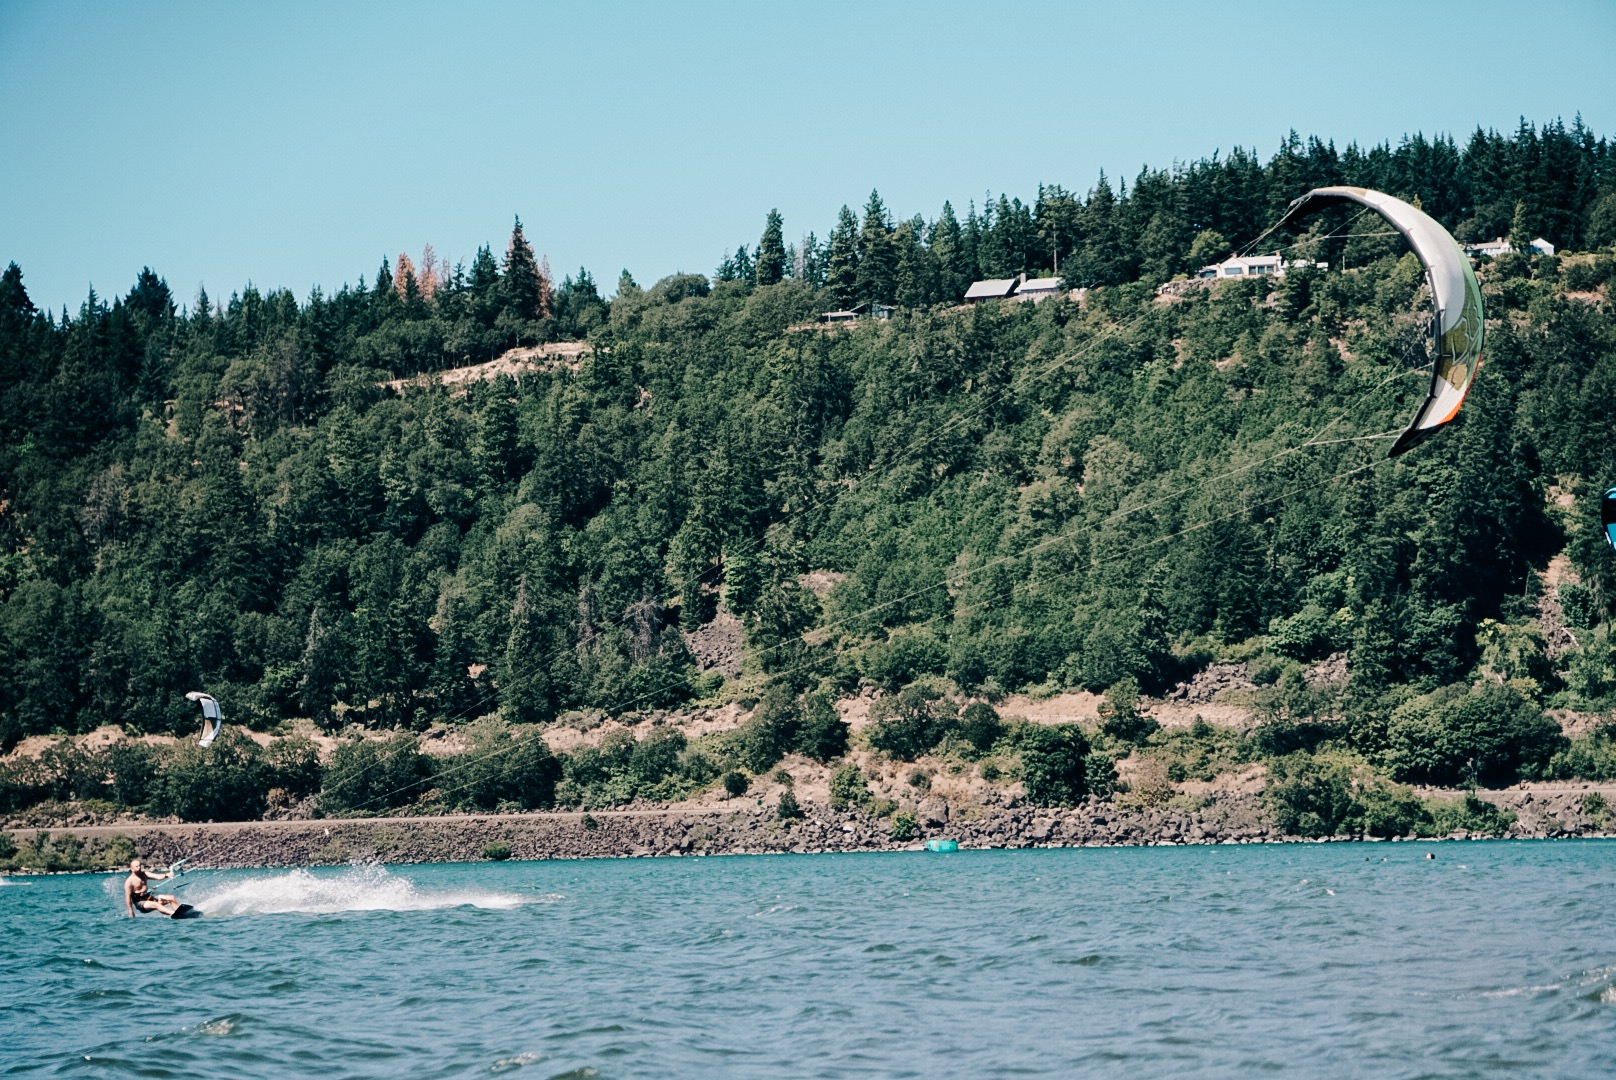 Edward Arthur Dalton  catching some world renowned Columbia River wind in the windsurfing capitol of Hood River, Oregon.